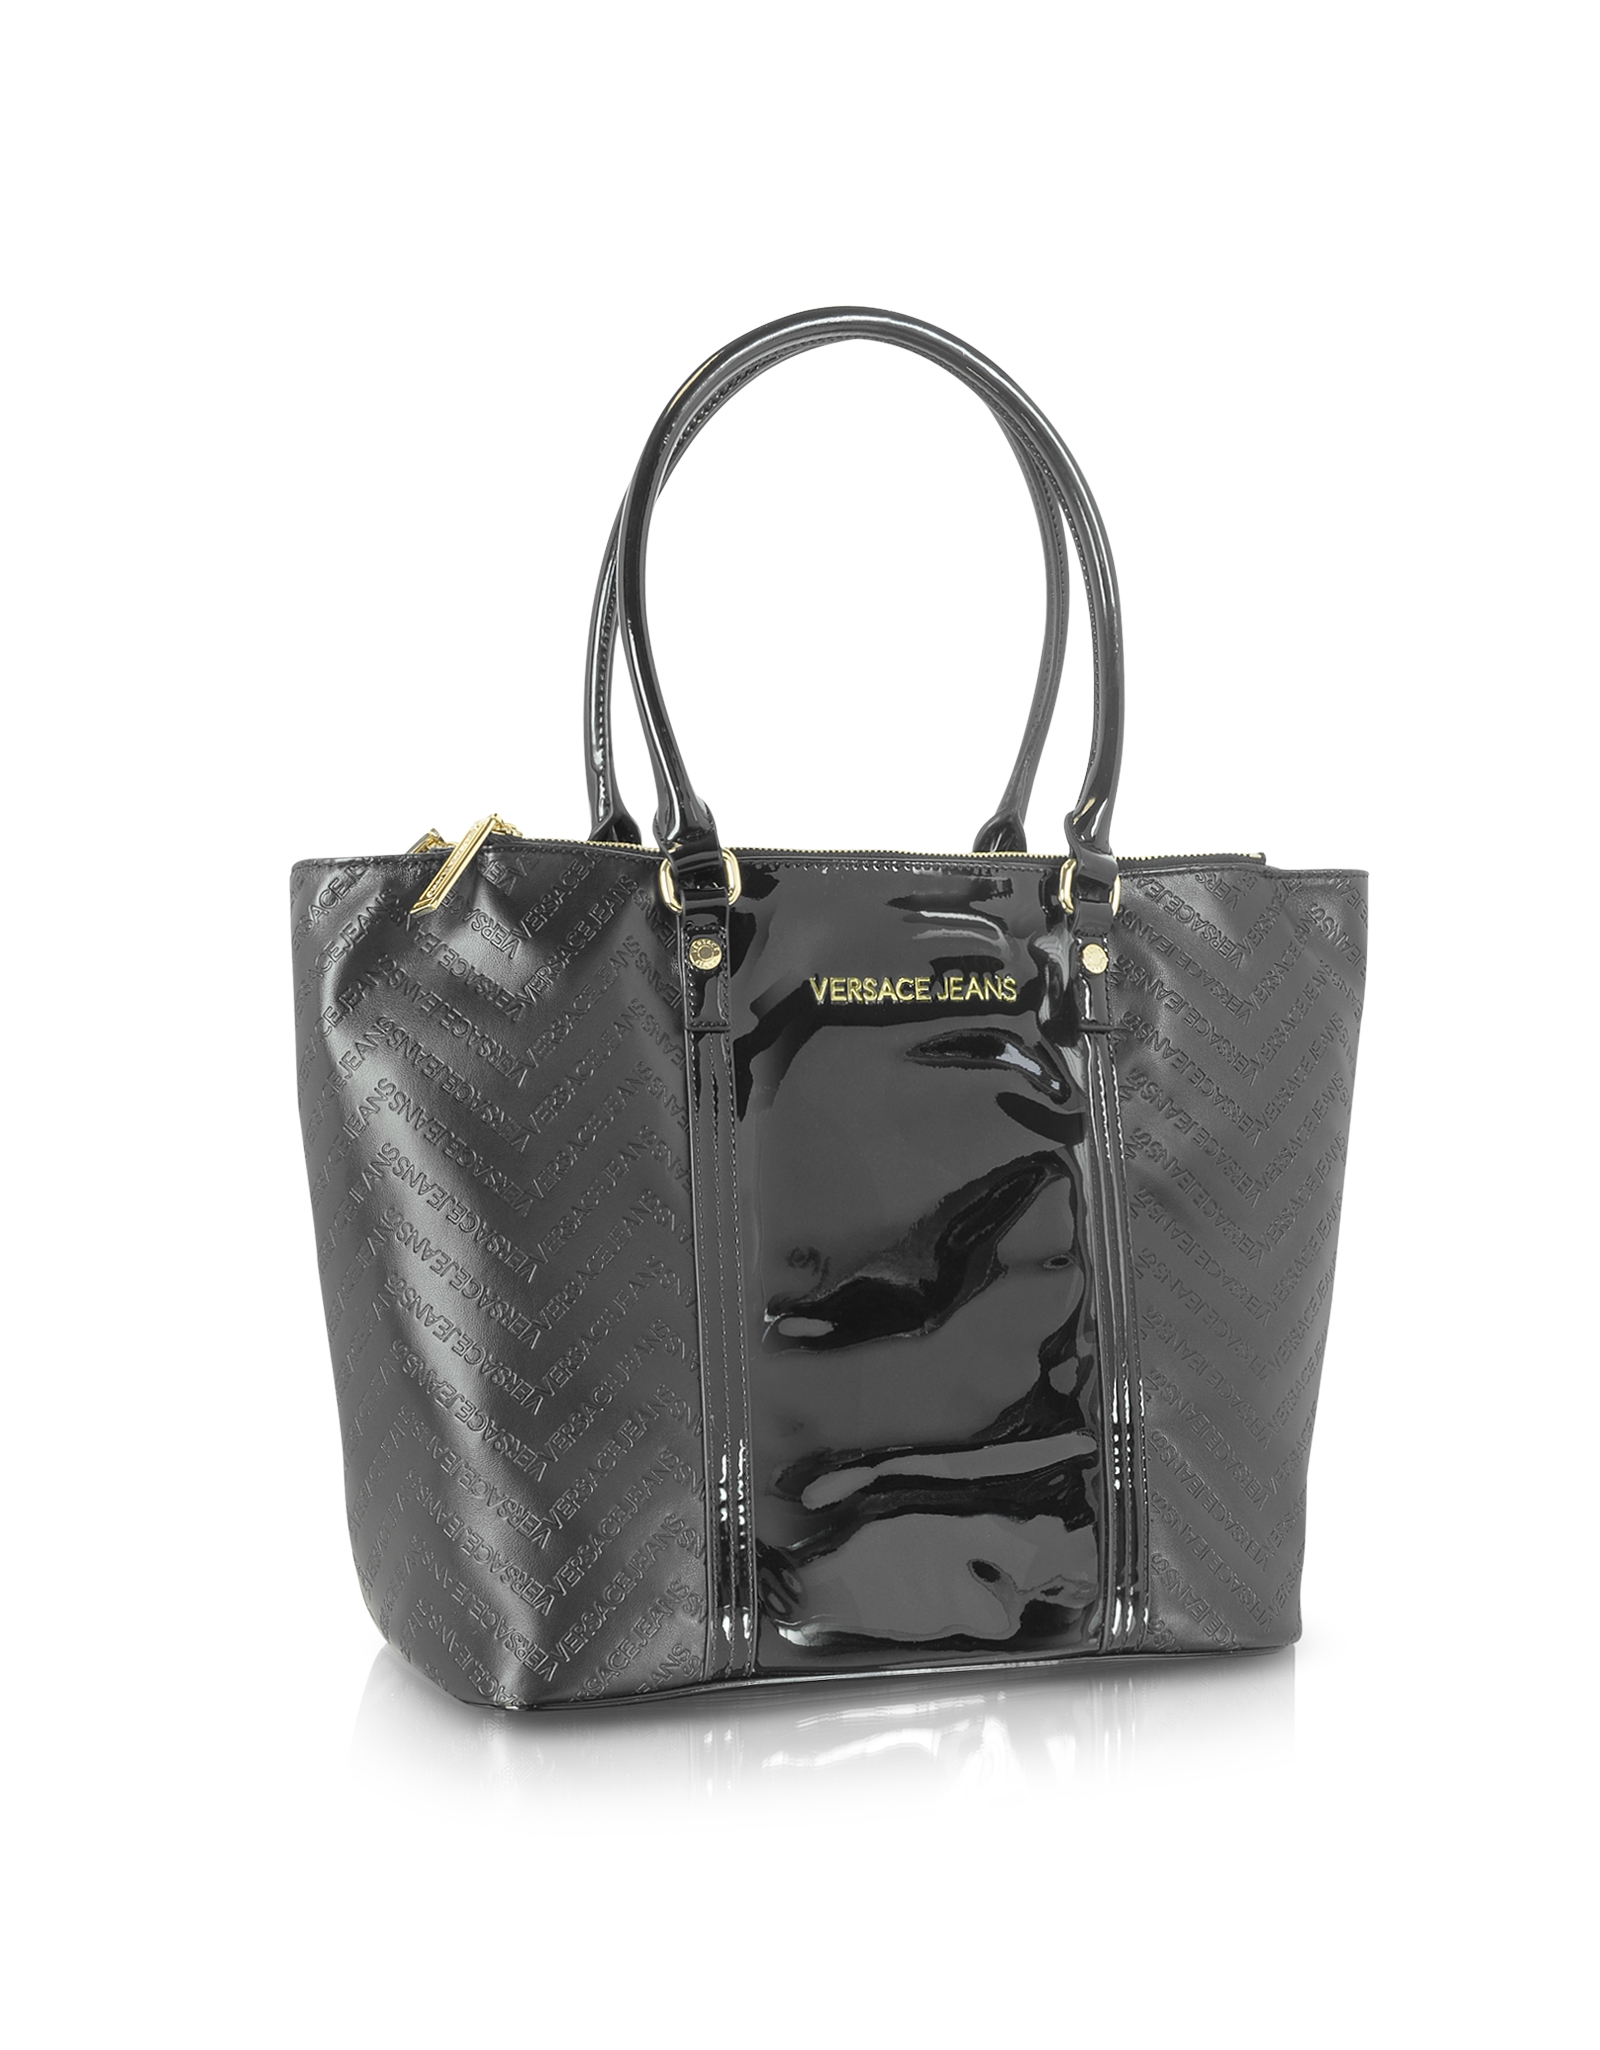 Lyst - Versace Jeans Black Signature Eco Patent Leather Tote in Black 3b33c120746d5